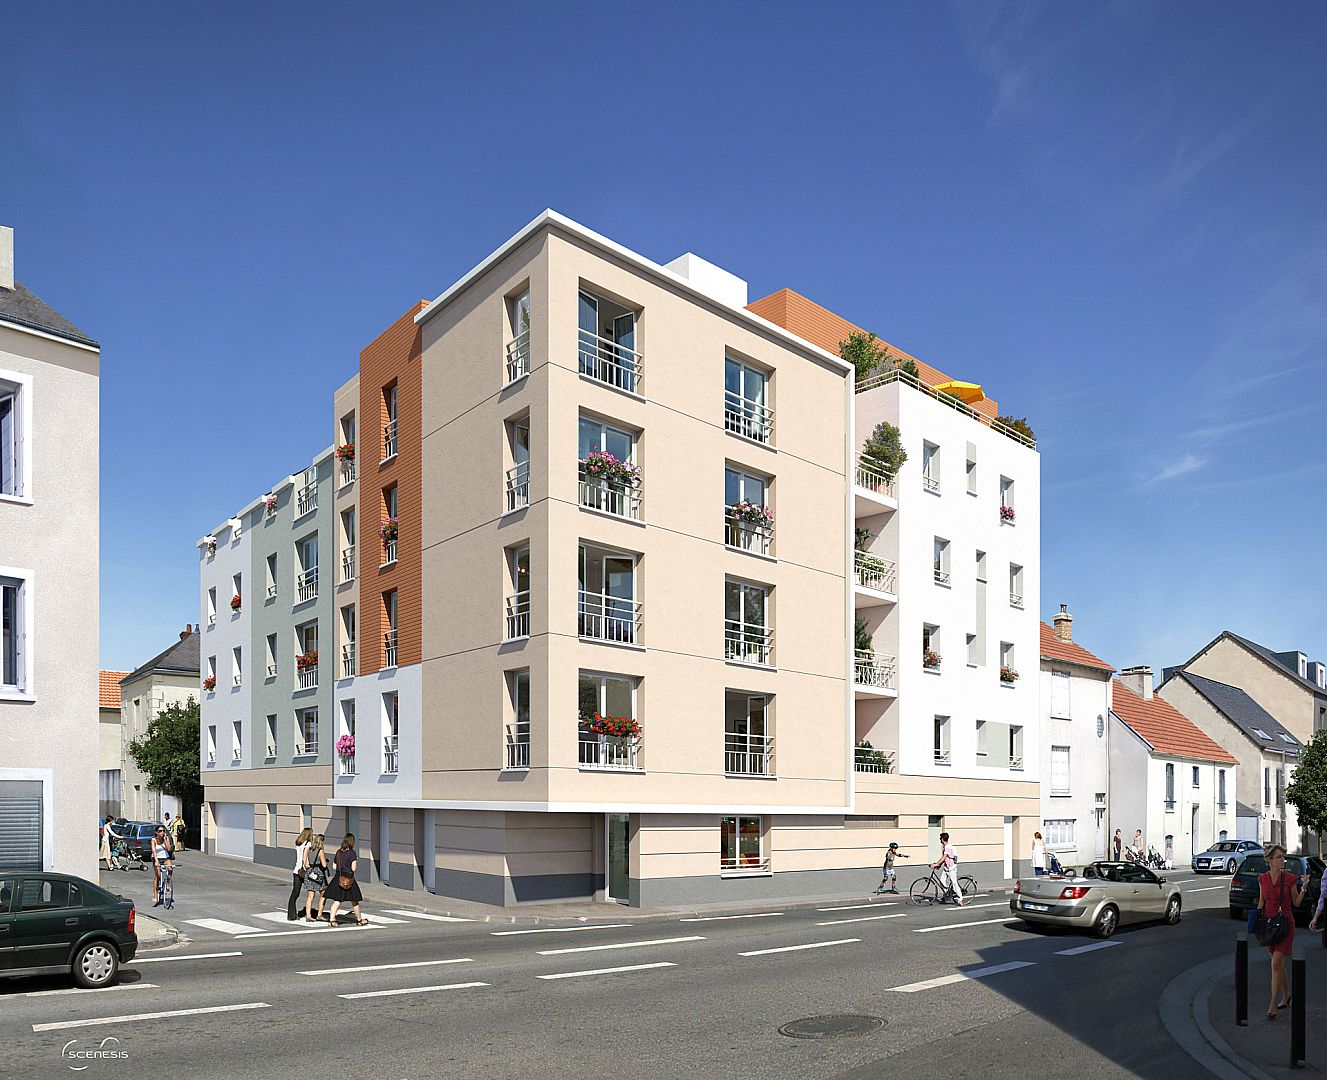 R sidence haxo appartement neuf nantes evimmo news for Achat appartement neuf nantes